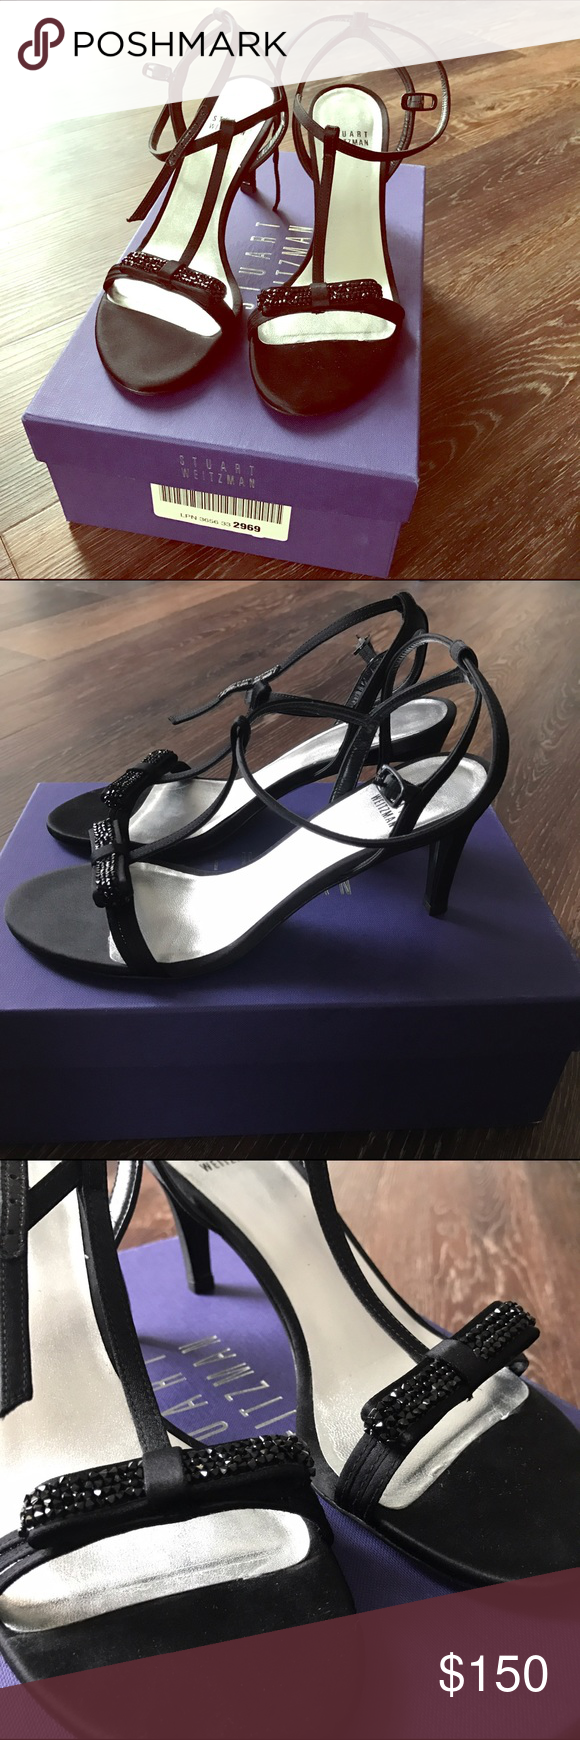 Stuart Weitzman Zesty Black Satin Heels size 7 NEW These beauties are perfect for events. Only worn once- in excellent condition. Black satin with gorgeous beaded sequins. They fit a narrow foot. Absolutely adorable. A classic. Stuart Weitzman Shoes Heels